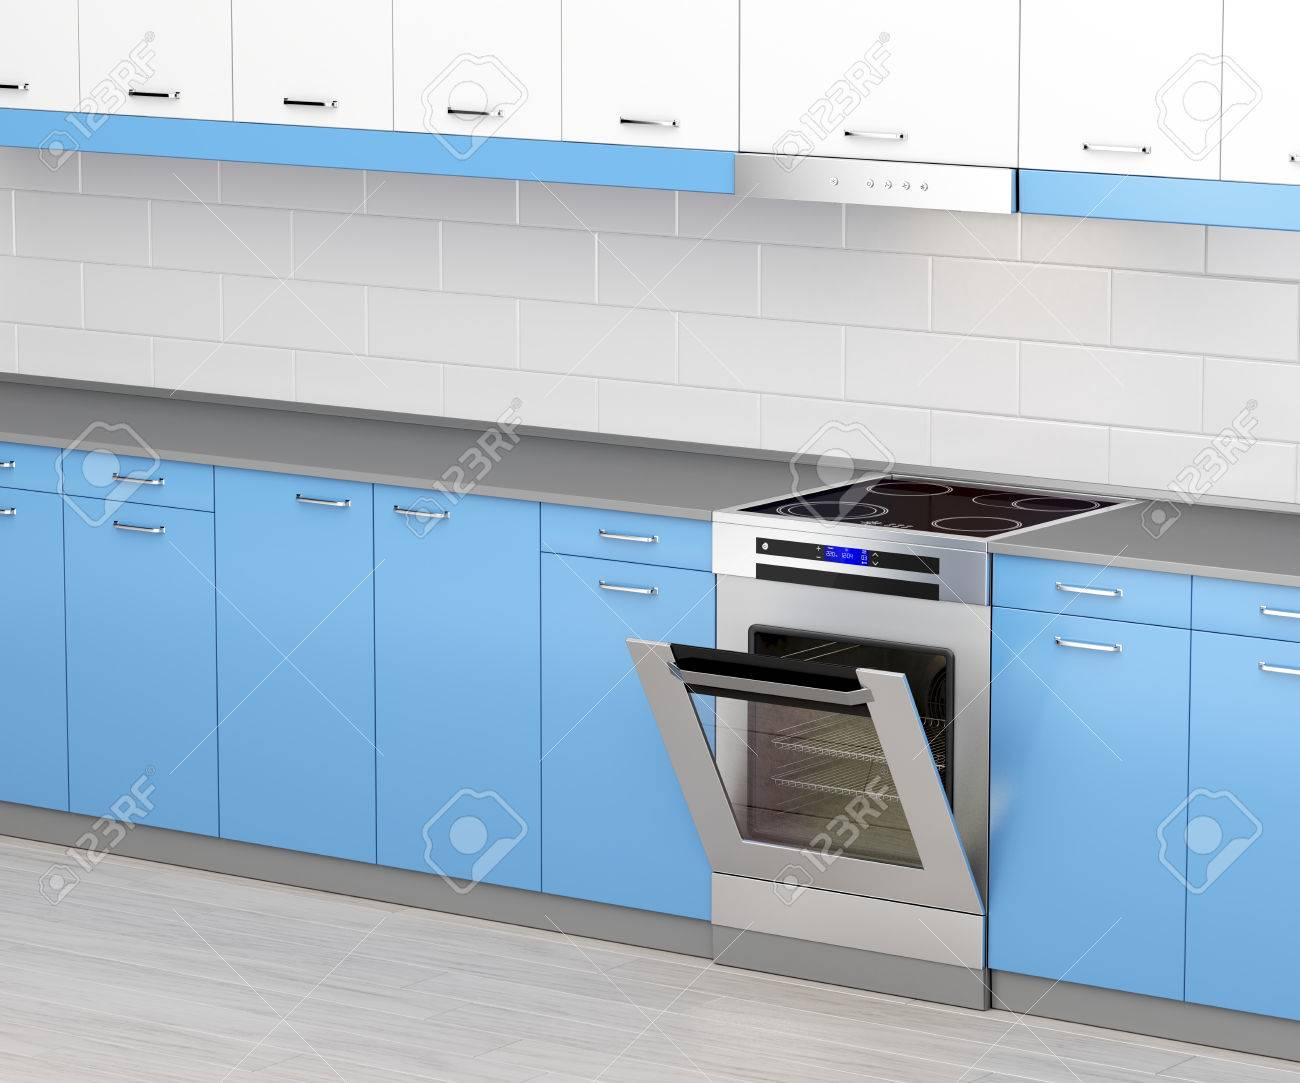 Electric Cooker With Induction Cooktop And Range Hood In The.. Stock ...